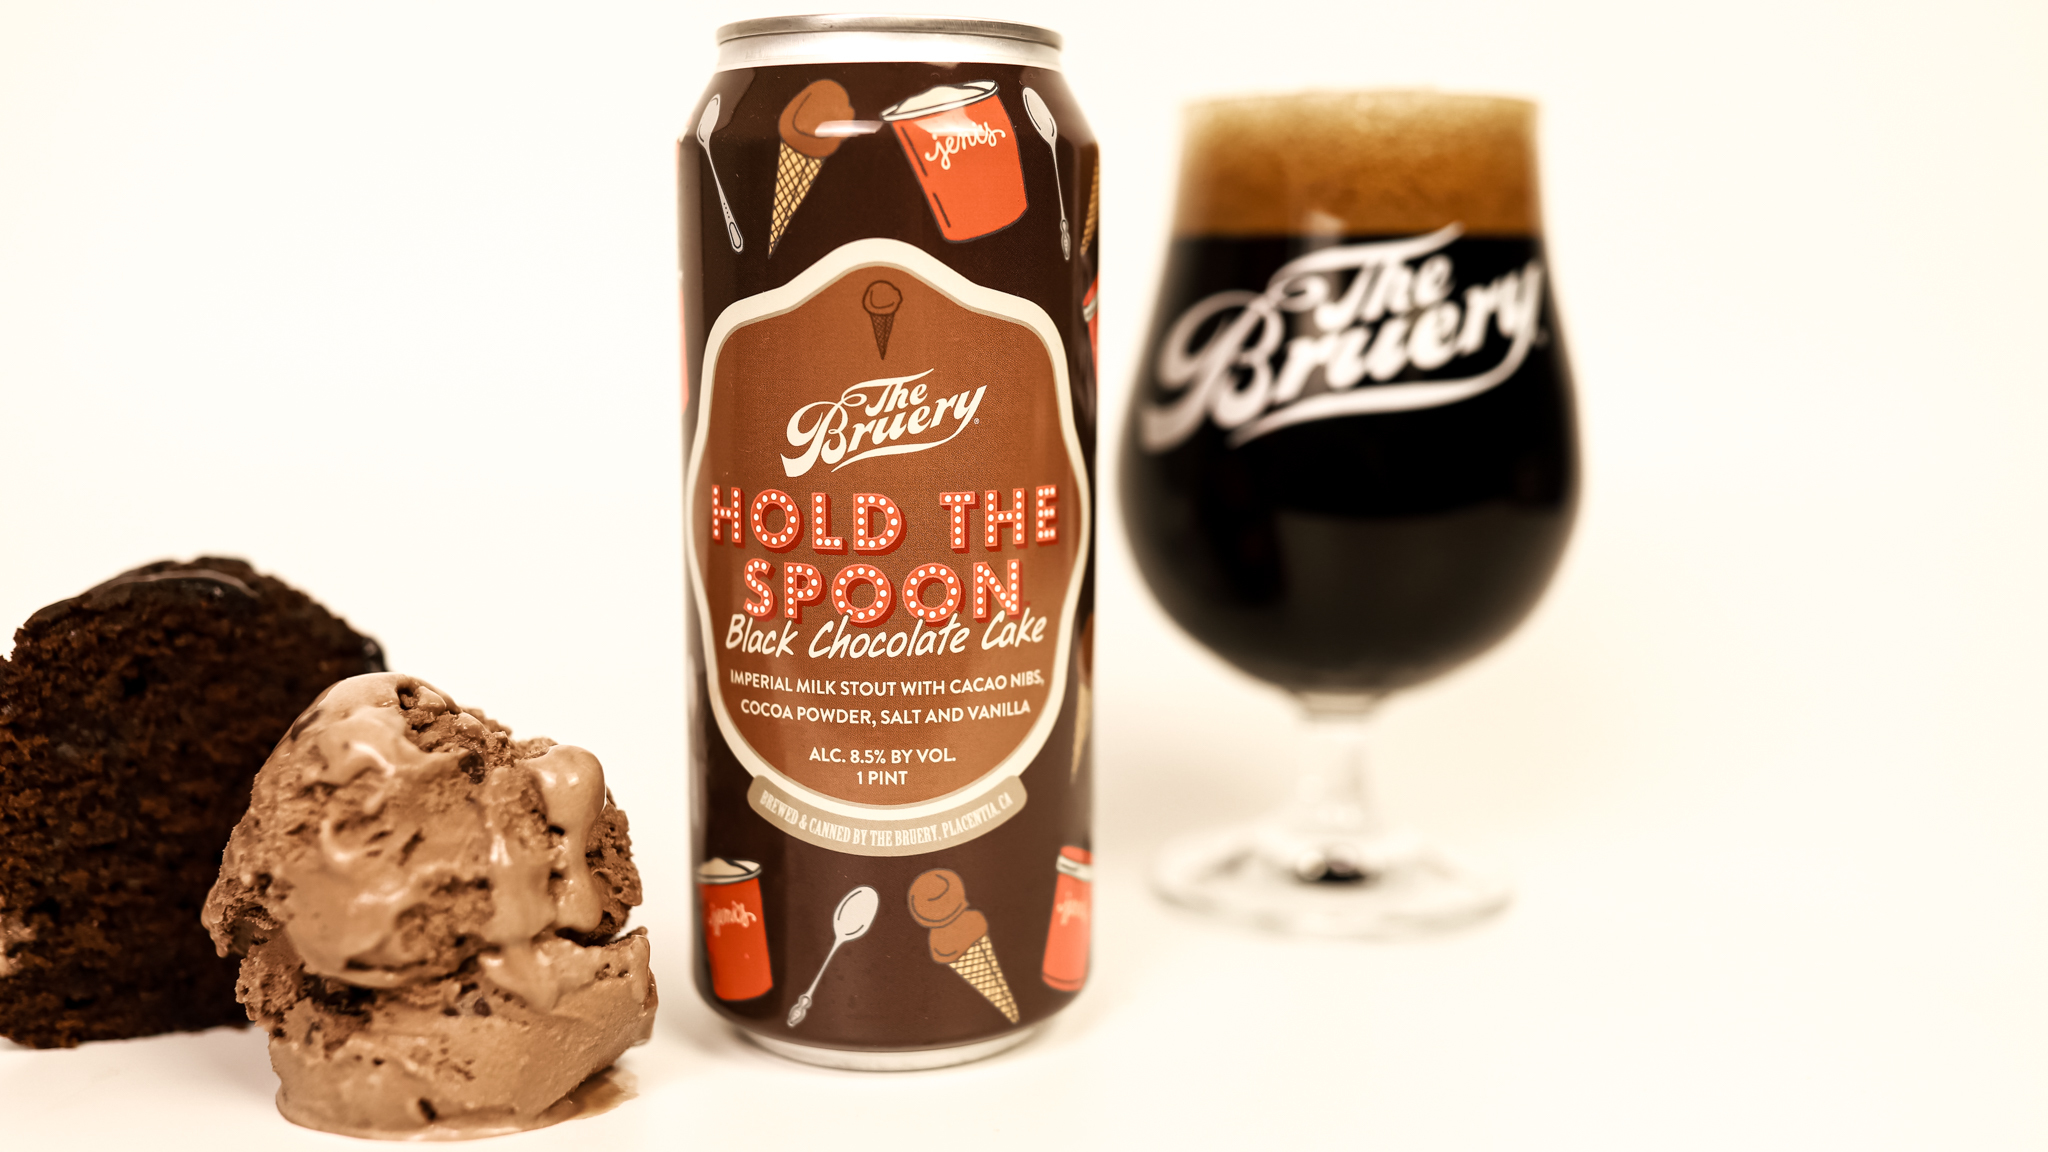 image of Hold The Spoon Black Chocolate Cake, a collaboration with The Bruery and Jeni's Splendid Ice Creams courtesy of The Bruery